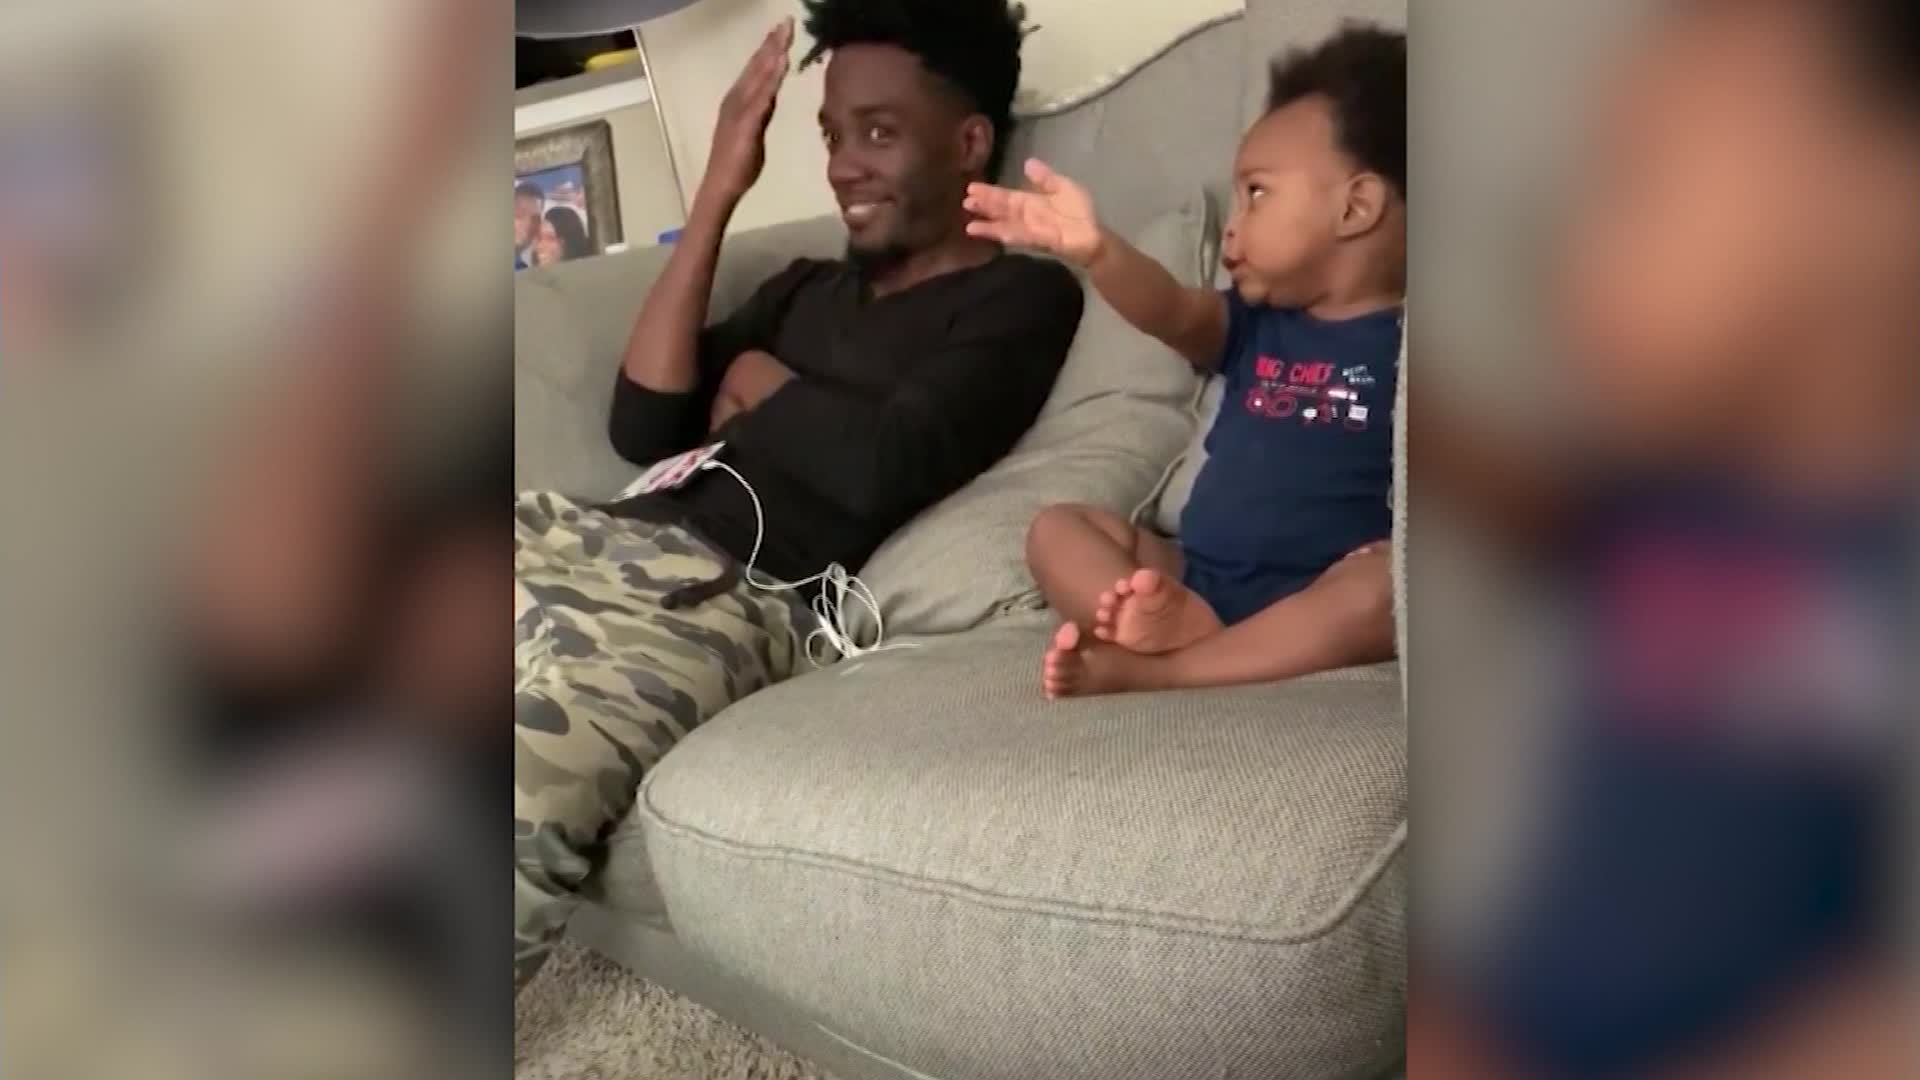 Babbling baby has conversation with dad in heartwarming video